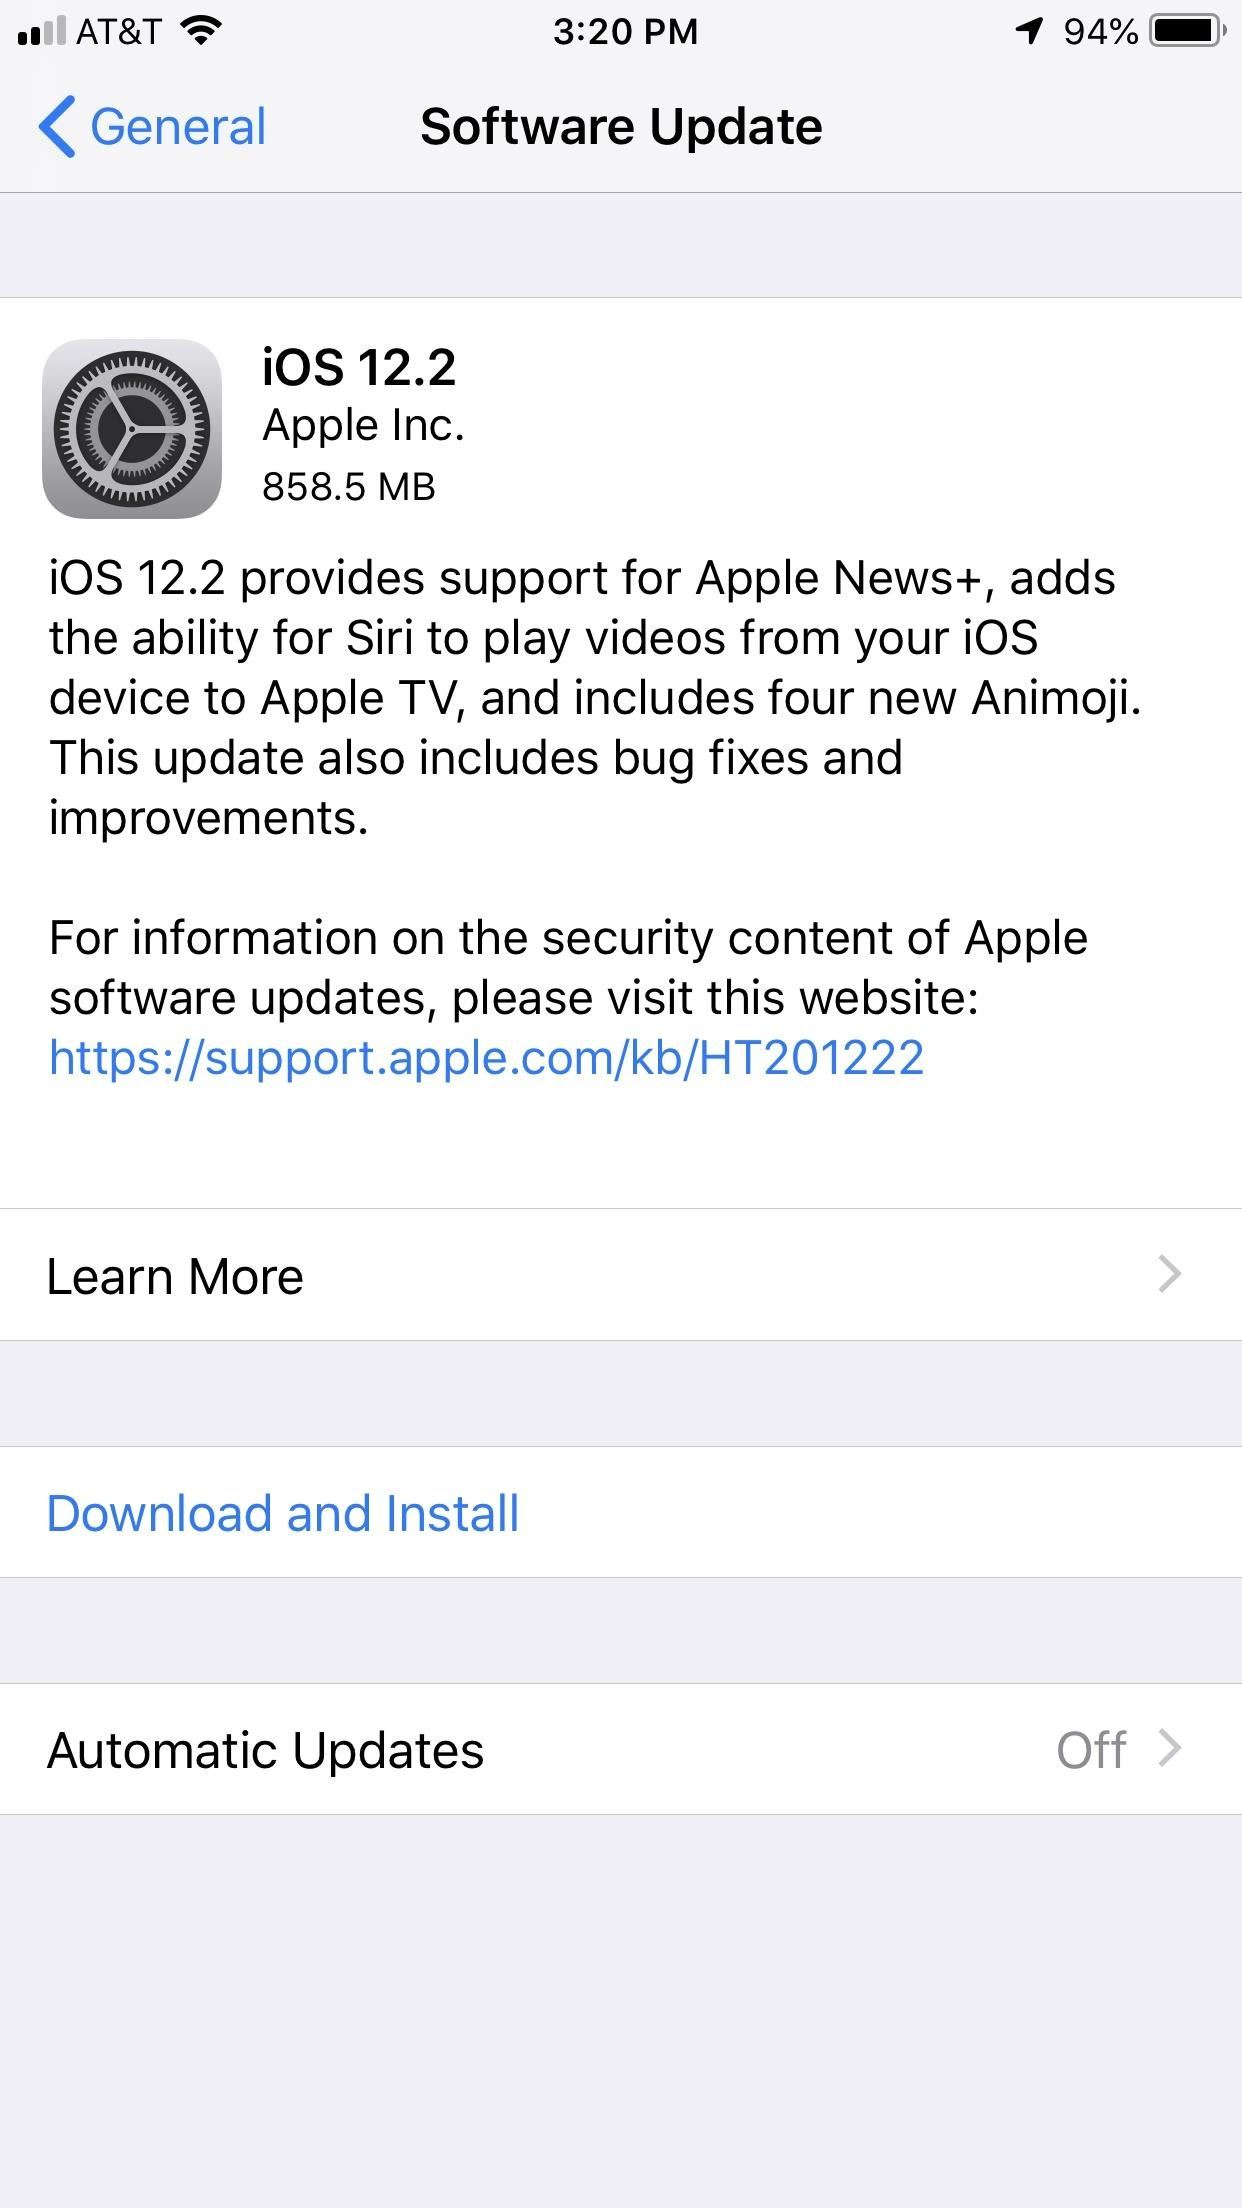 Apple Just Released iOS 12.2 for iPhone